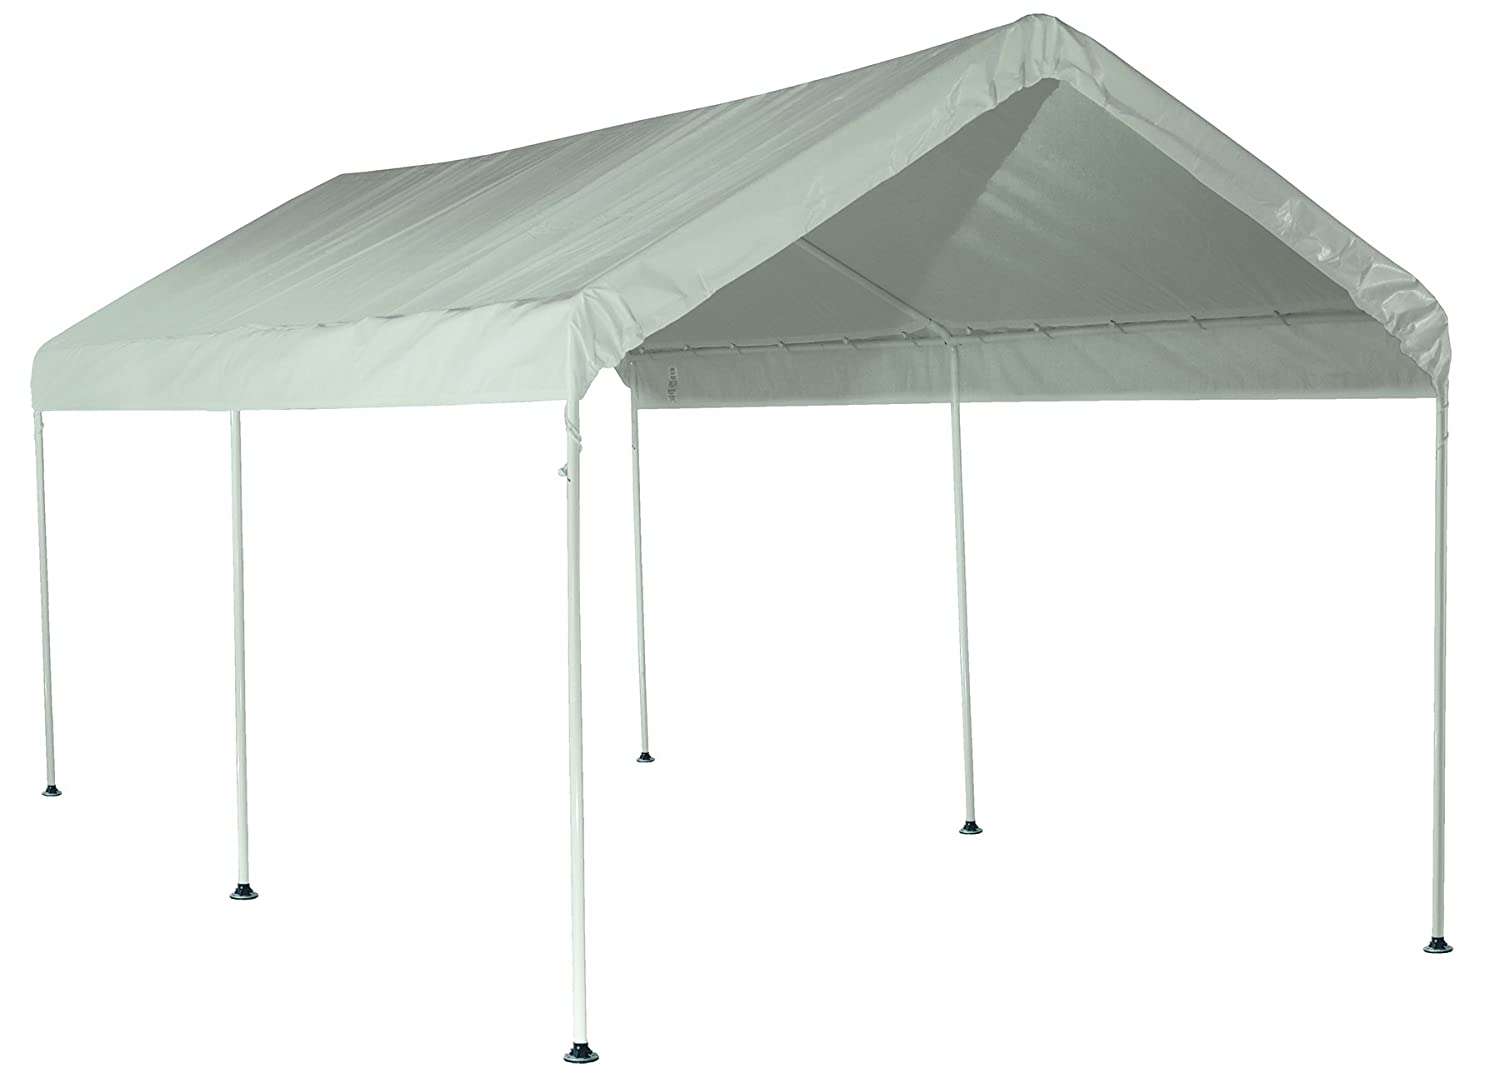 Amazon.com  ShelterLogic MAX AP Series Canopy White  Outdoor Canopies  Garden u0026 Outdoor  sc 1 st  Amazon.com : 10 20 canopy tent - memphite.com